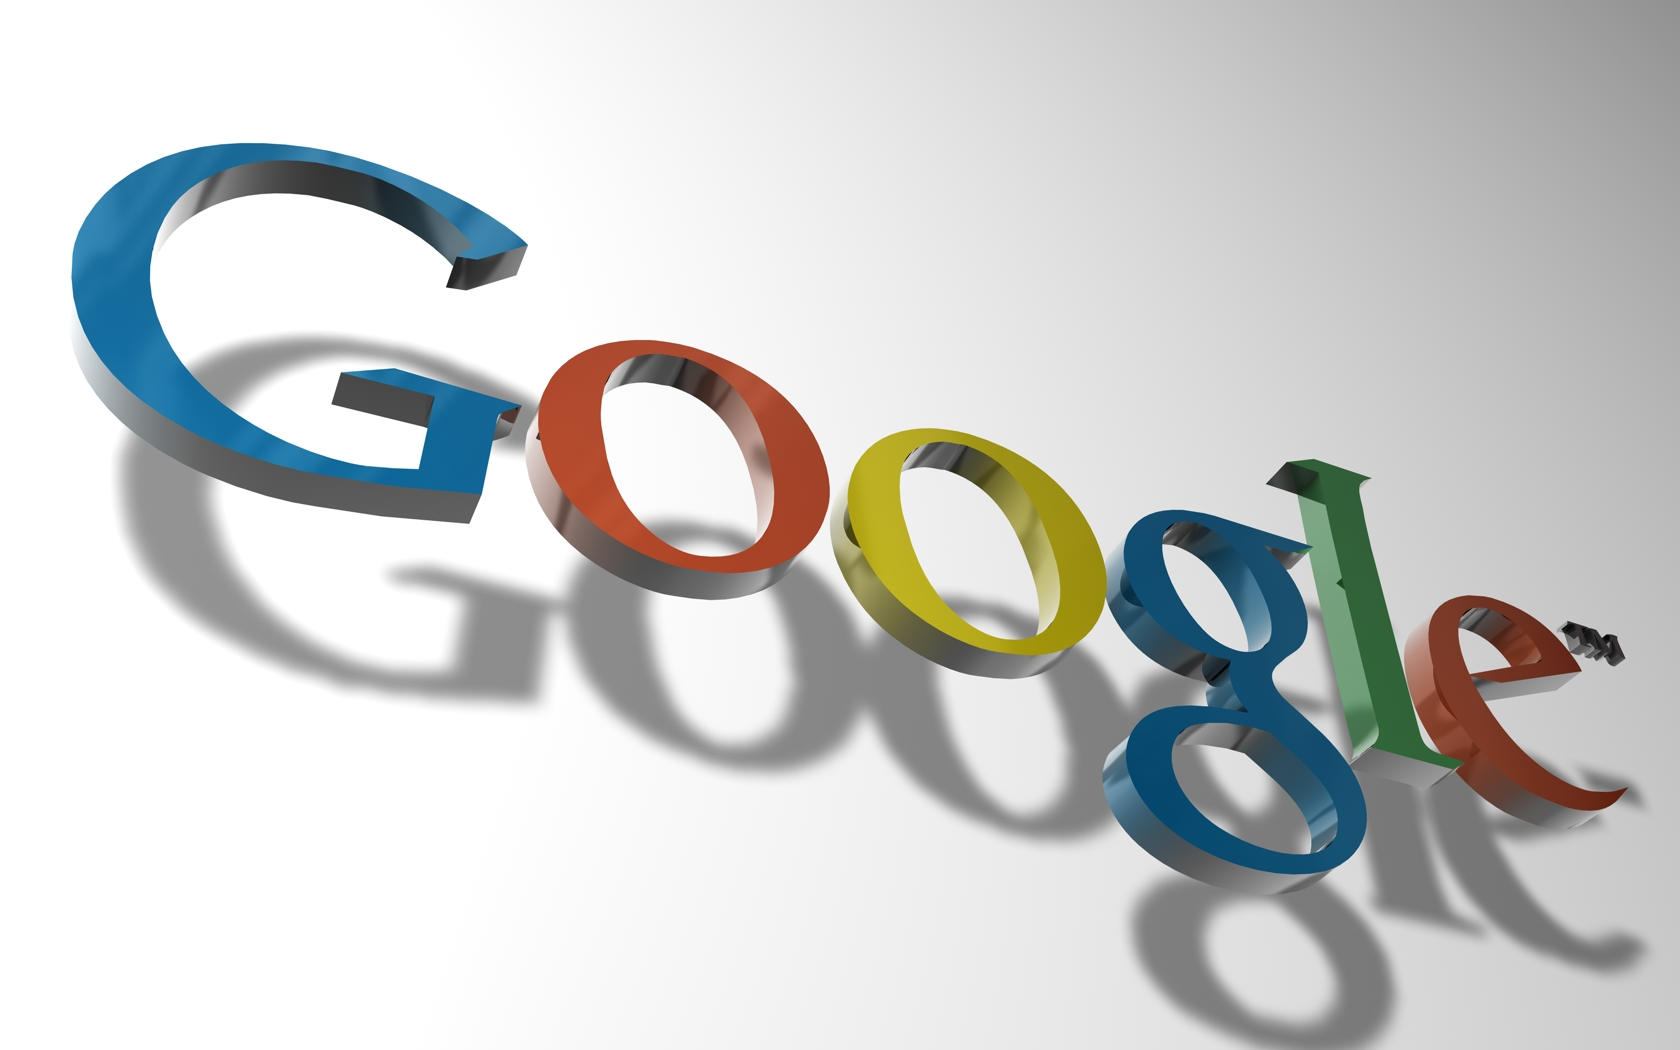 Irwin Mitchell penalised by Google for SEO tactics - The Lawyer | Legal News and Jobs | Advancing the business of law